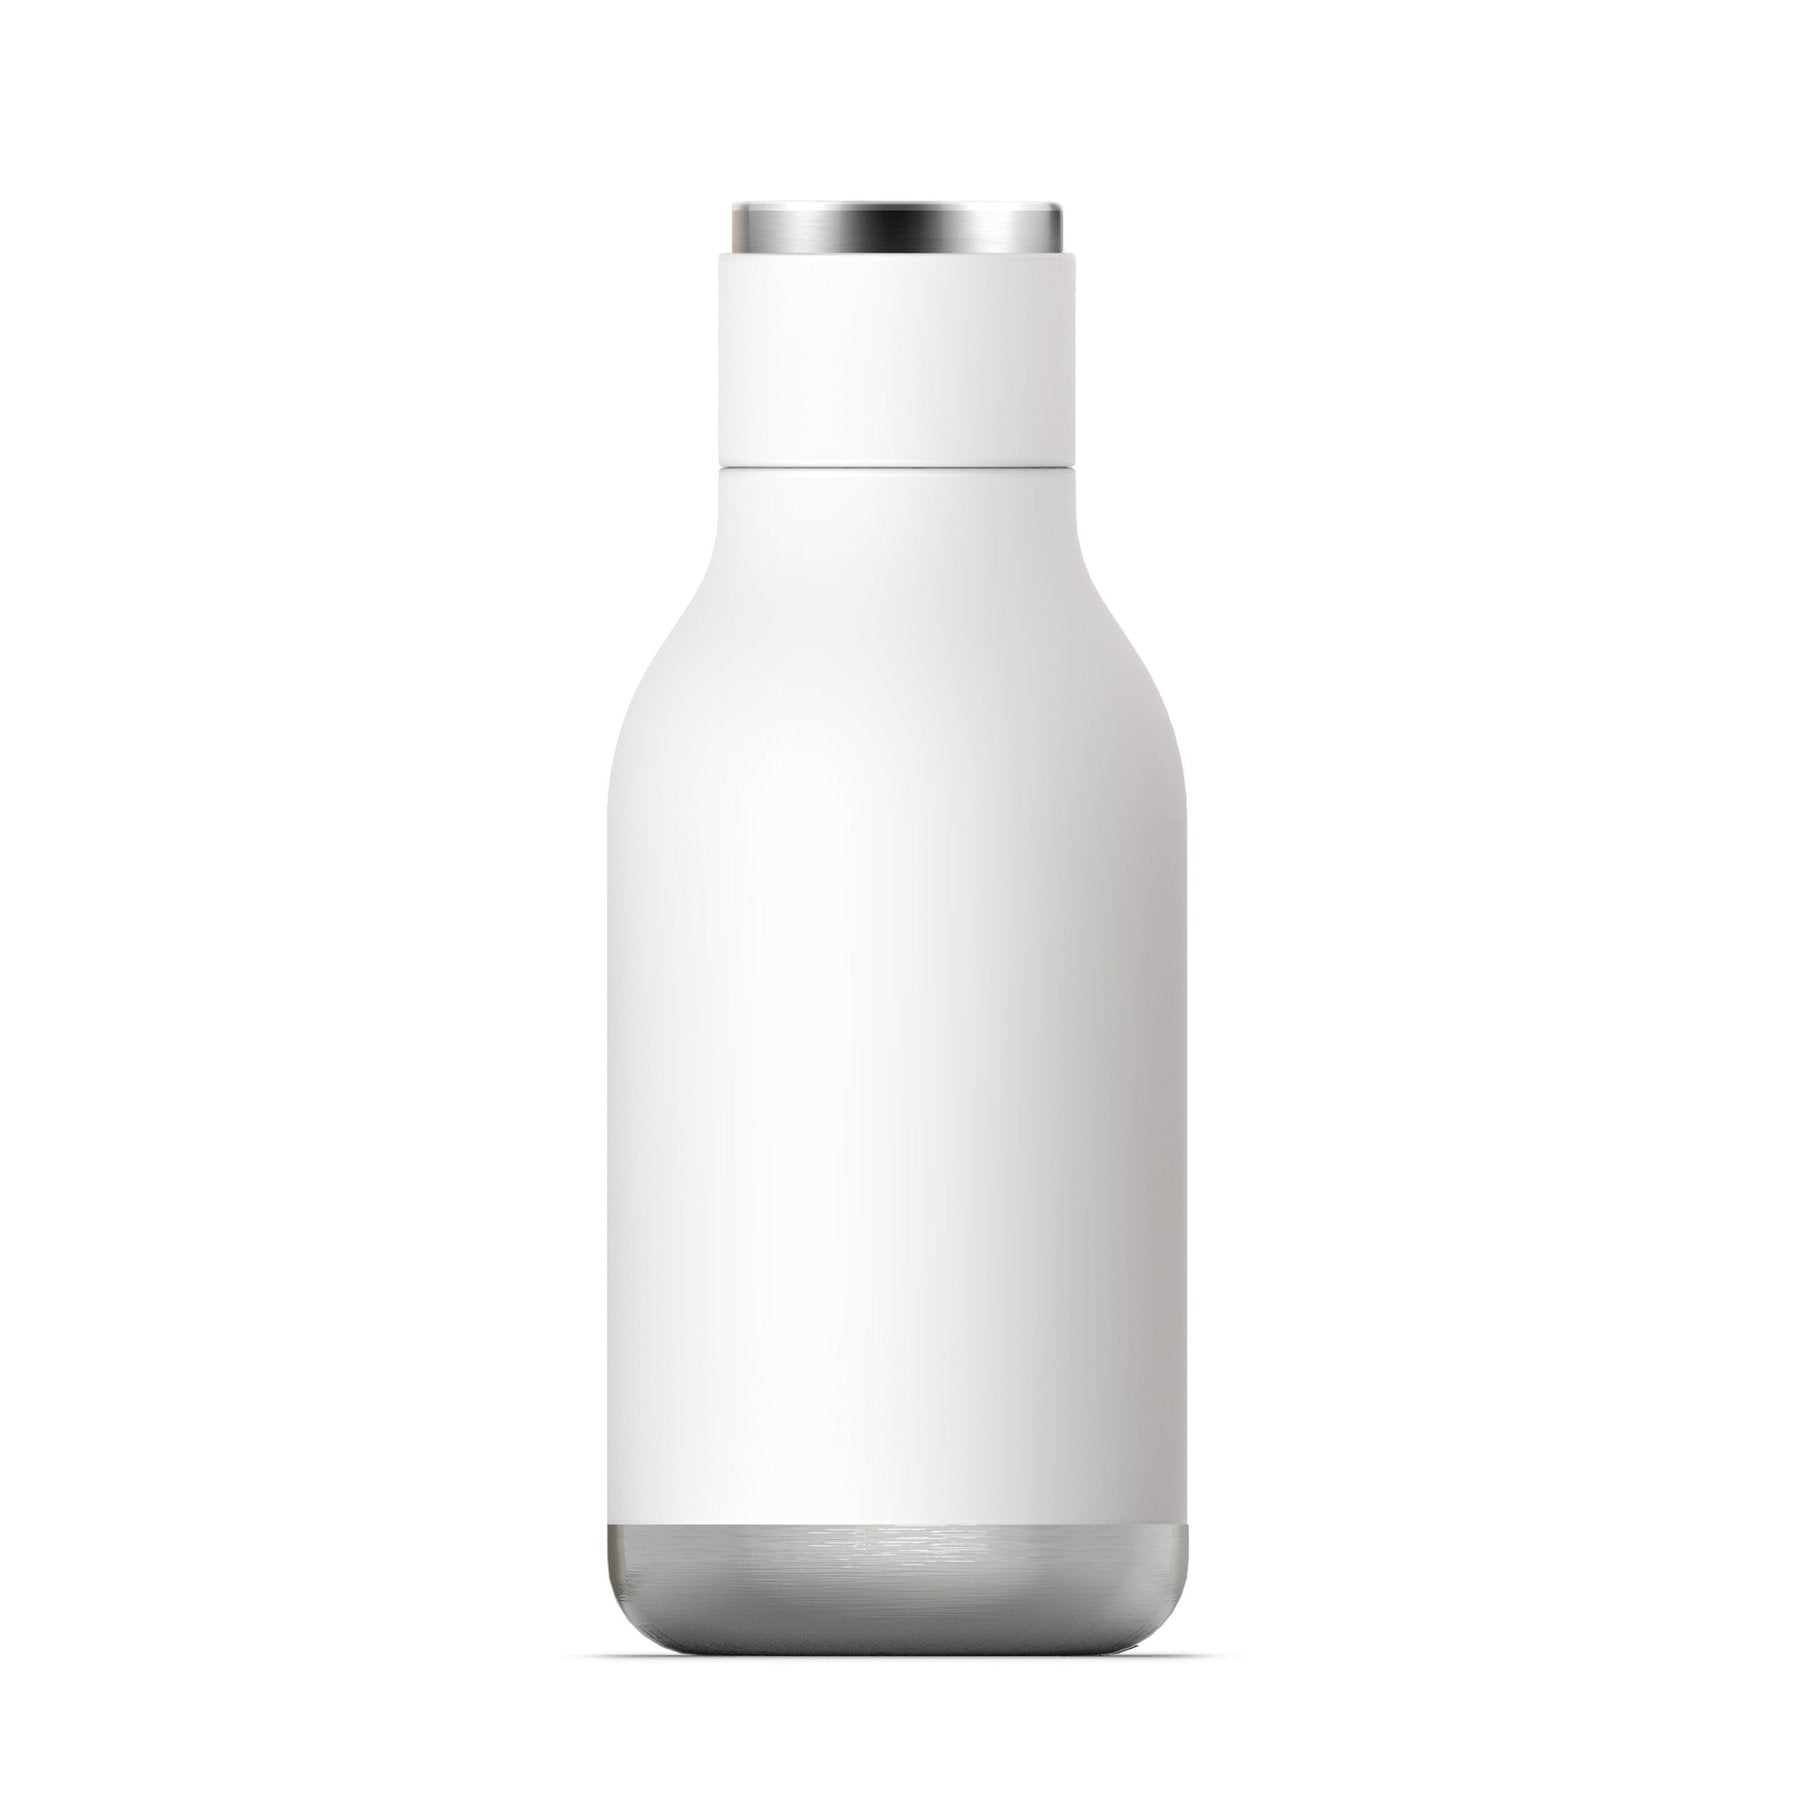 ASOBU Urban Insulated and Double Walled 16 Ounce 24hrs Cool Stainless Steel Bottle - White